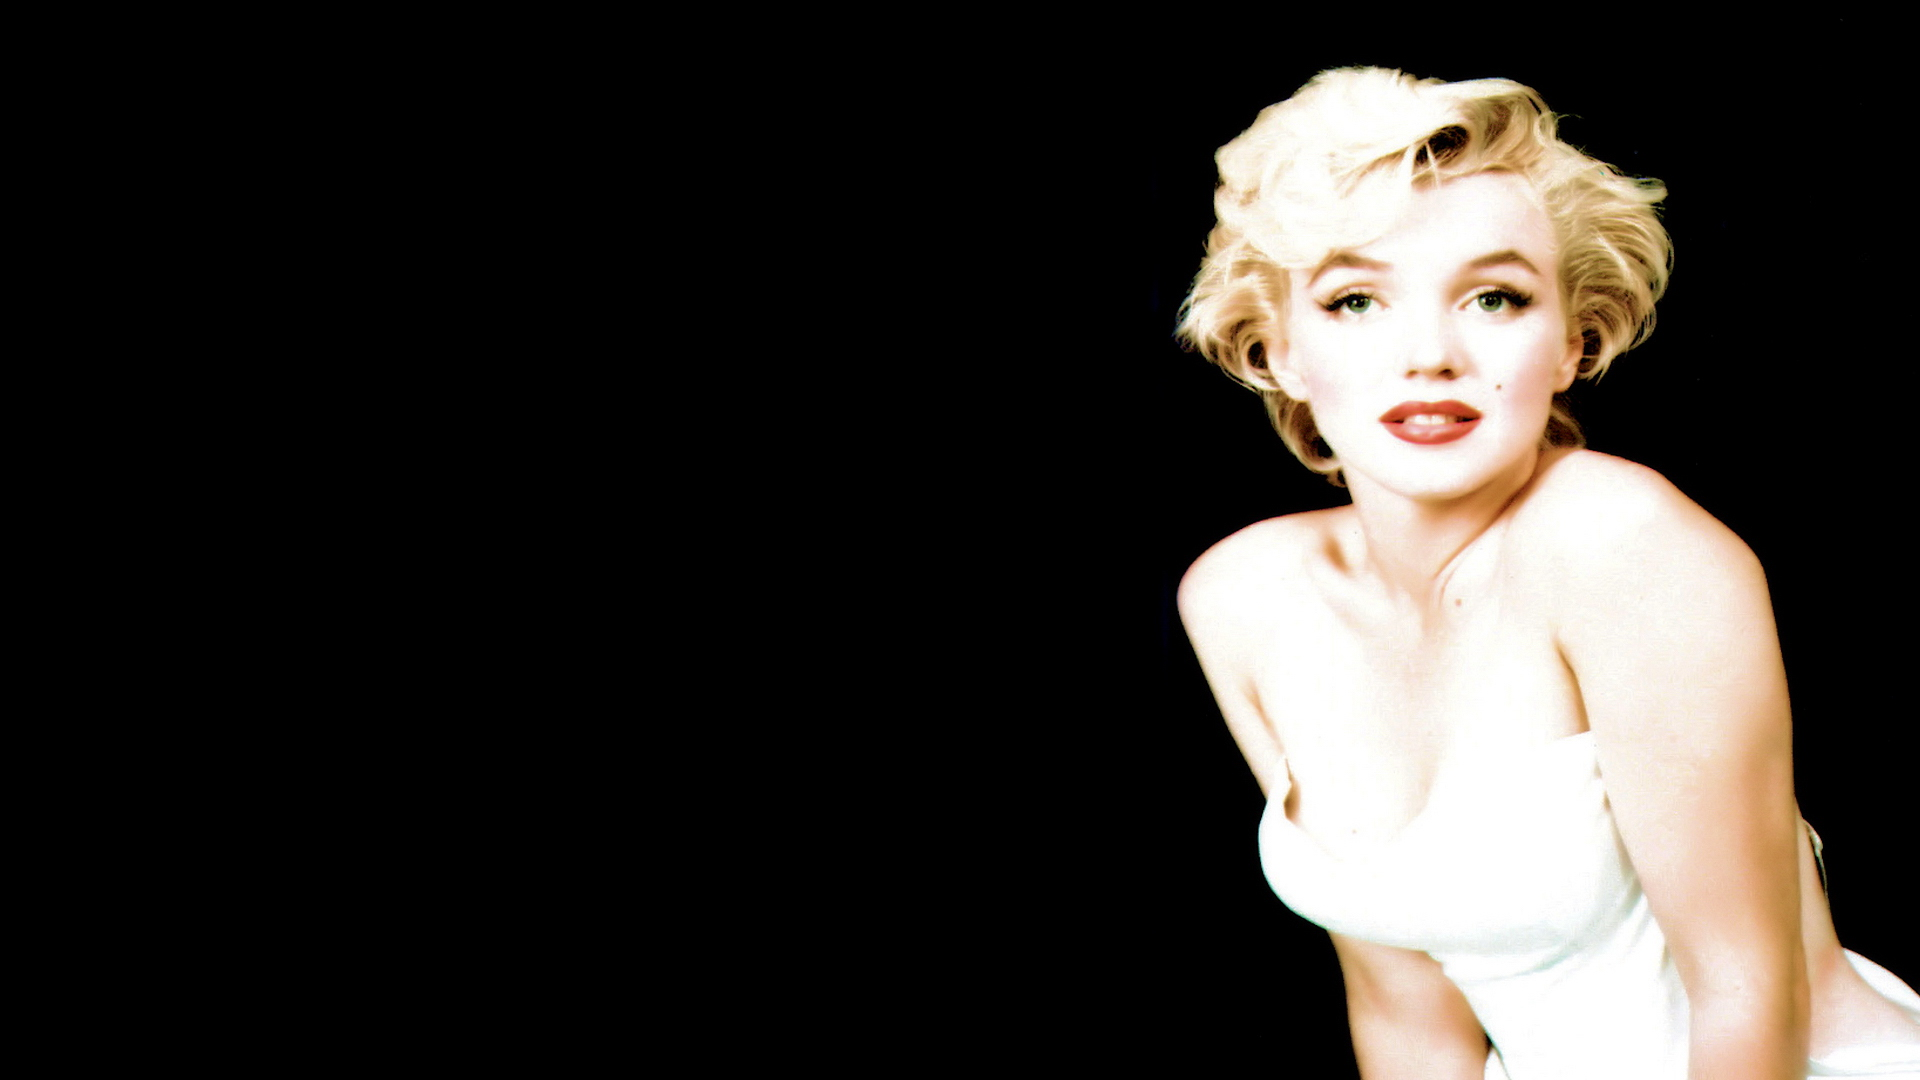 Marilyn Monroe Widescreen marilyn monroe 11149837 1920 1200 jpg 206